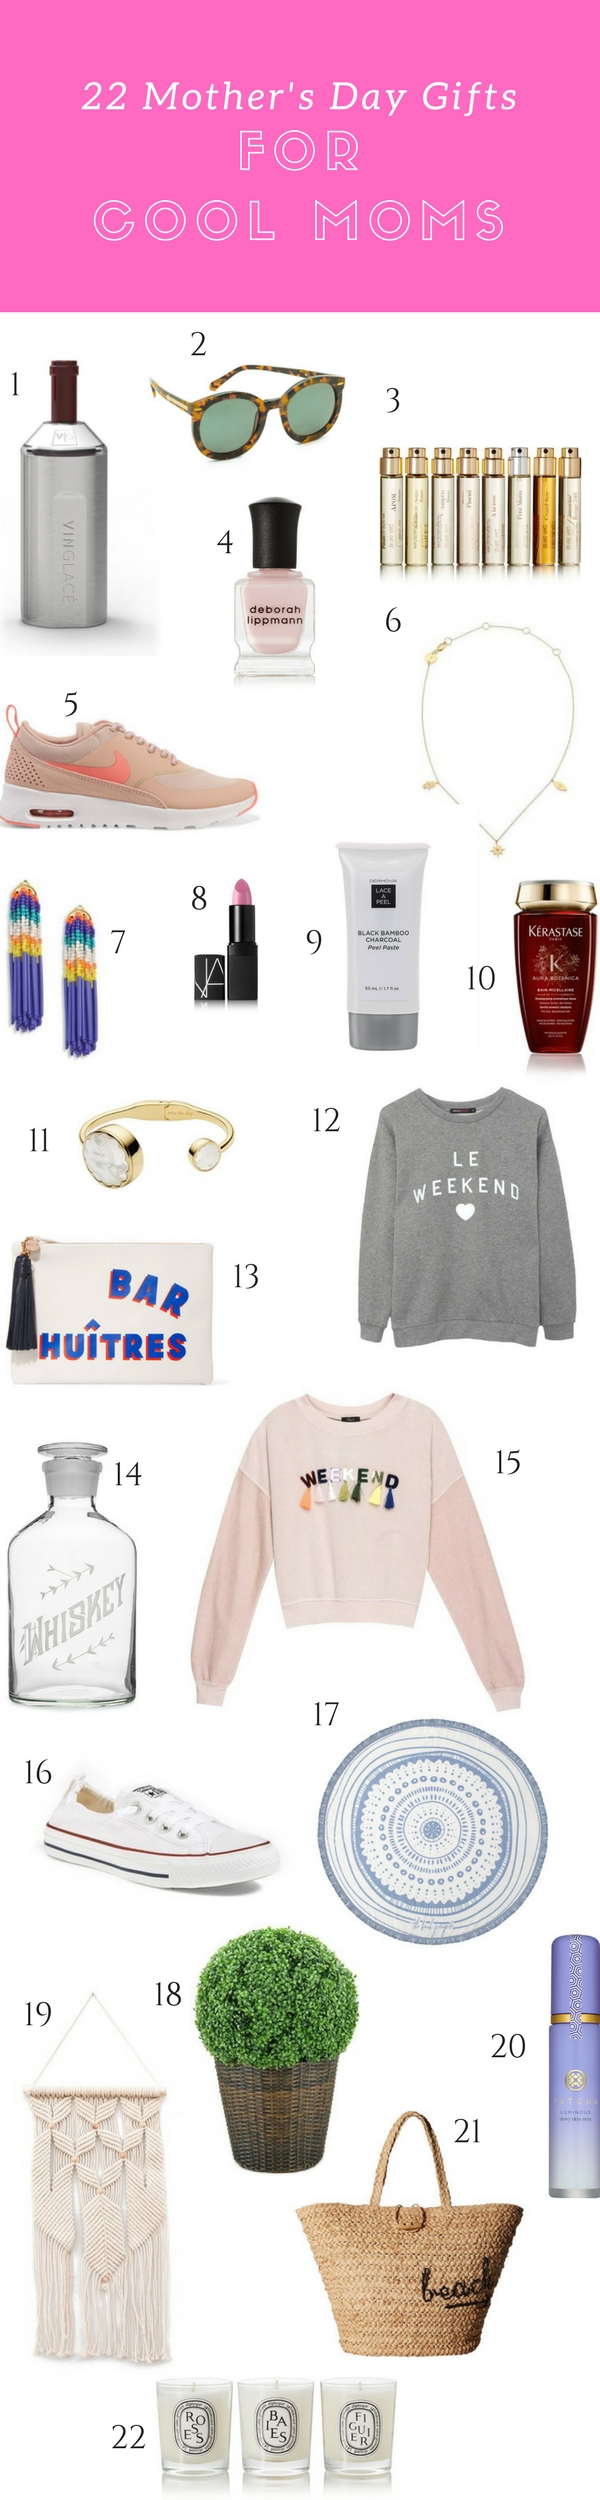 22 Mother's Day Gifts for Cool Moms Who Already Have Everything // Shop the guide at blog.cuteheads.com